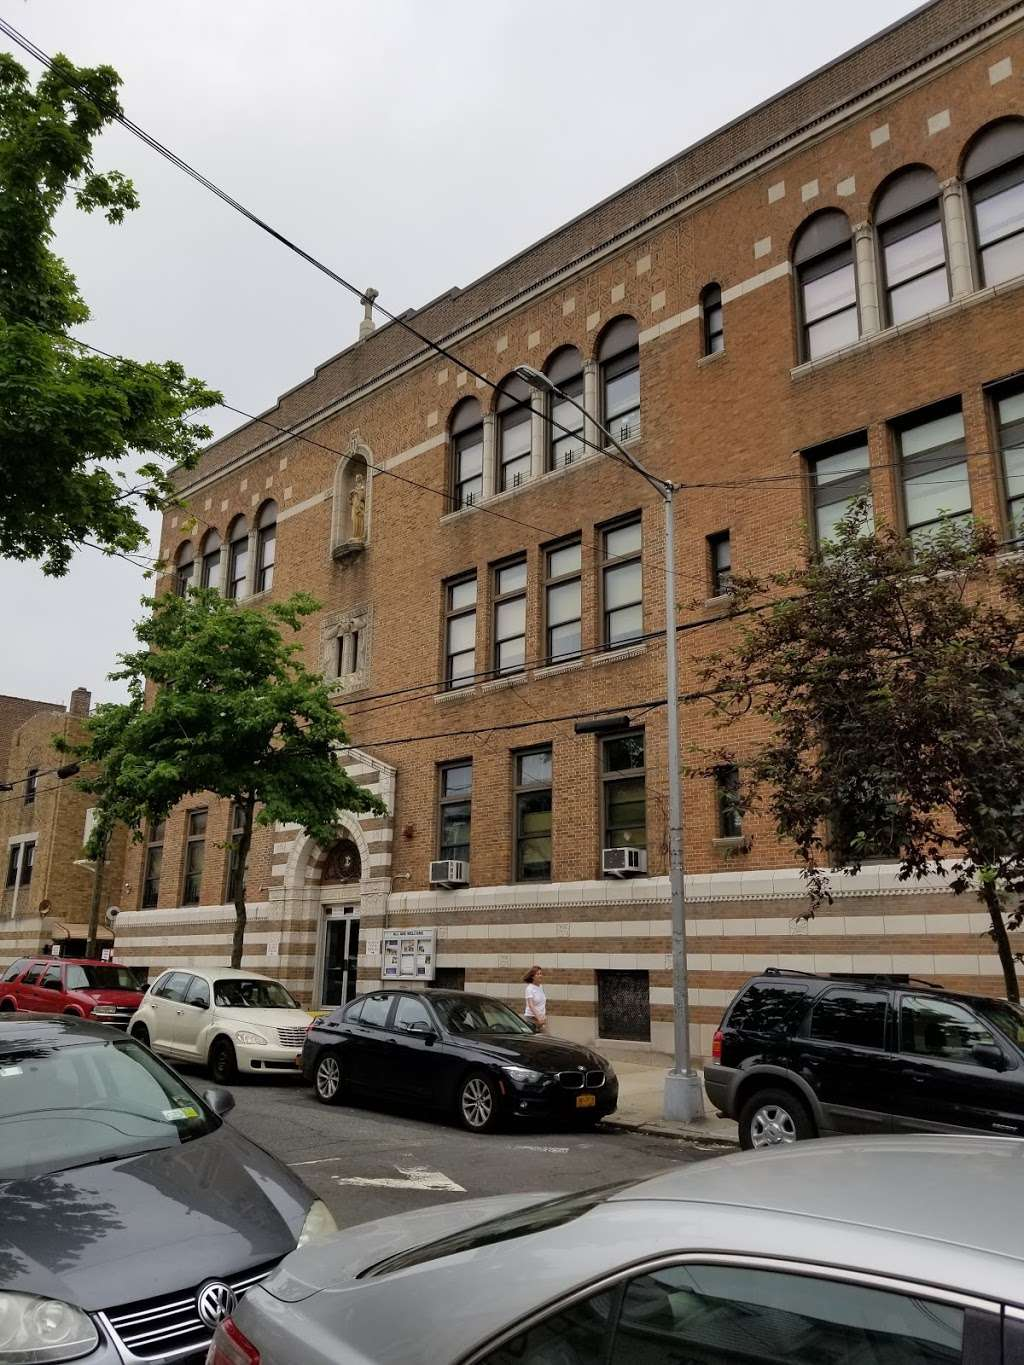 Immaculate Conception School - school  | Photo 6 of 6 | Address: 21-47 29th St, Astoria, NY 11105, USA | Phone: (718) 728-1969